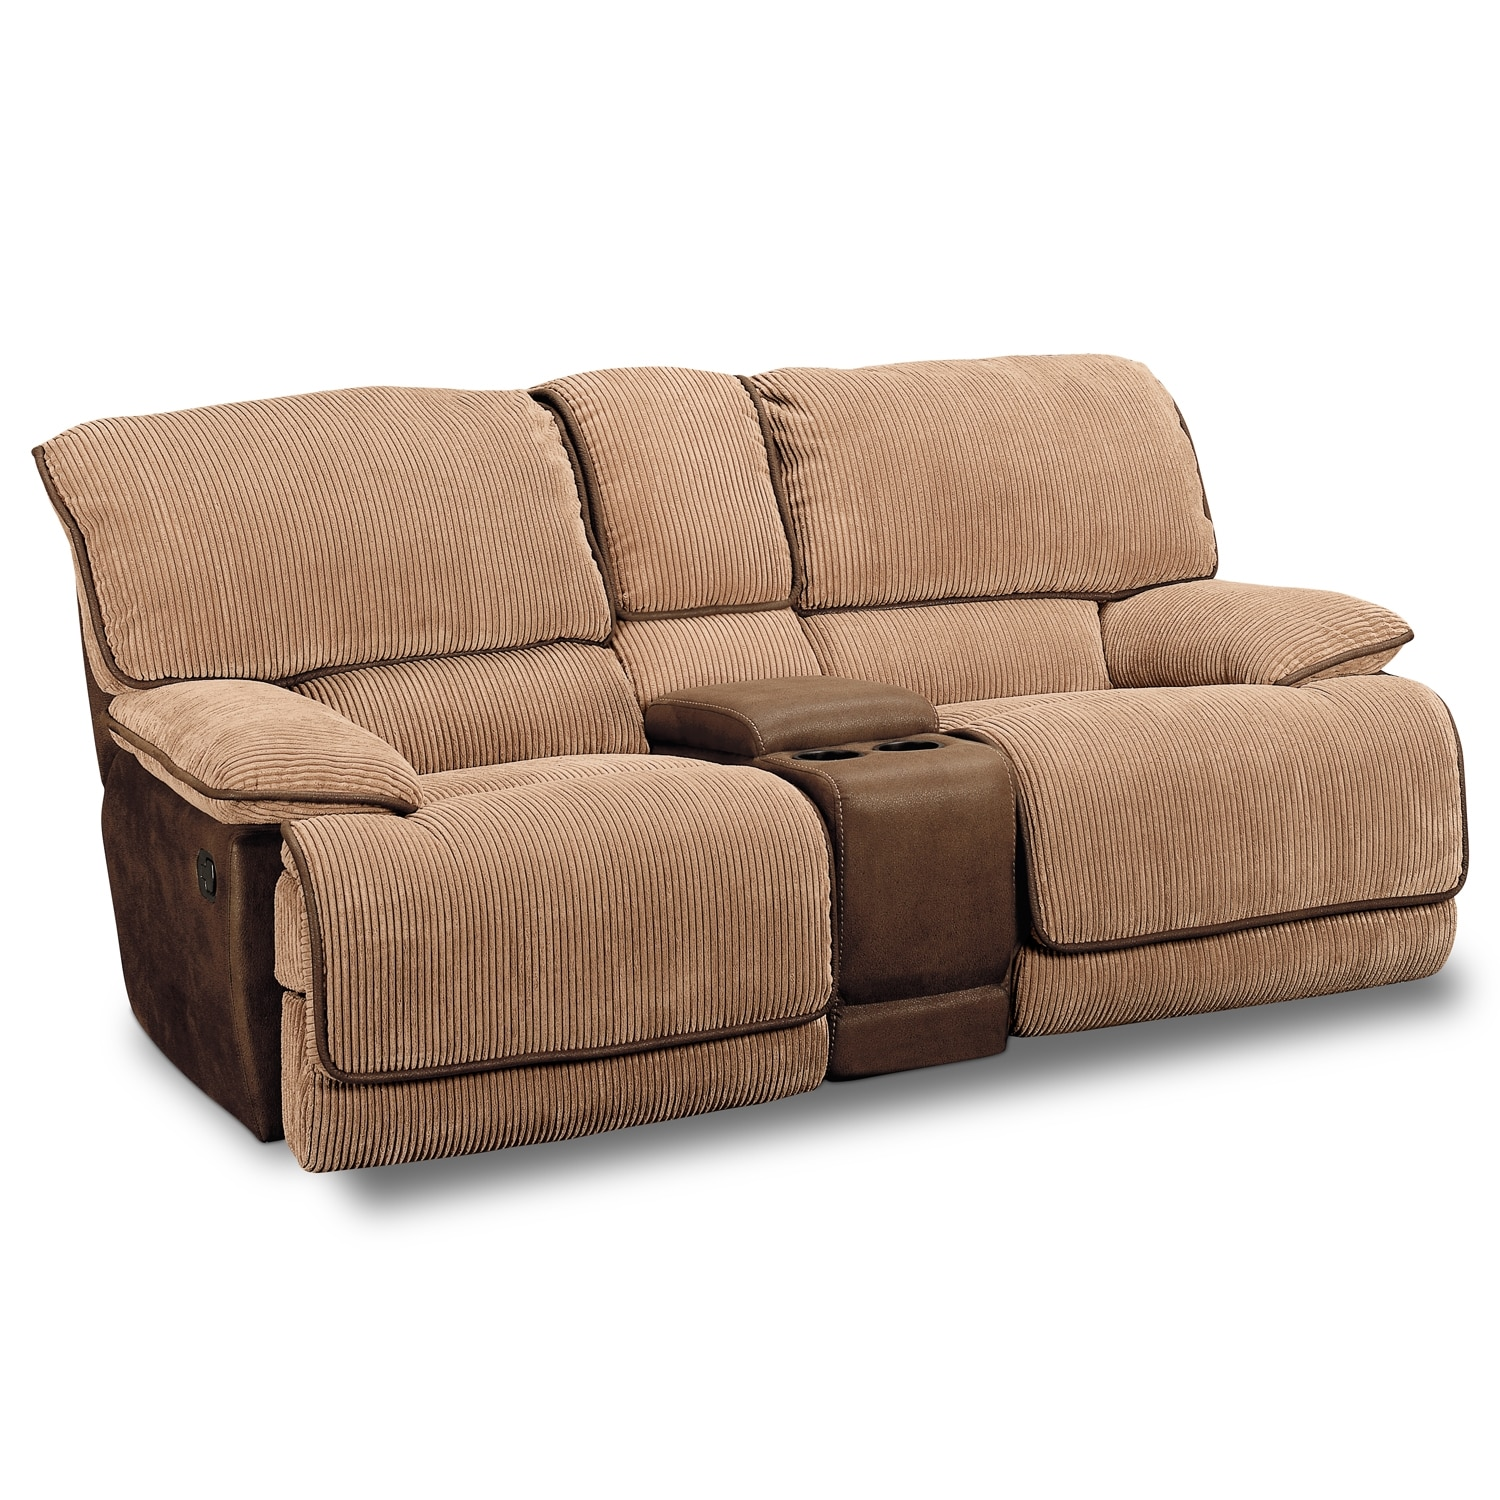 Laguna gliding reclining loveseat camel value city for Couch and loveseat